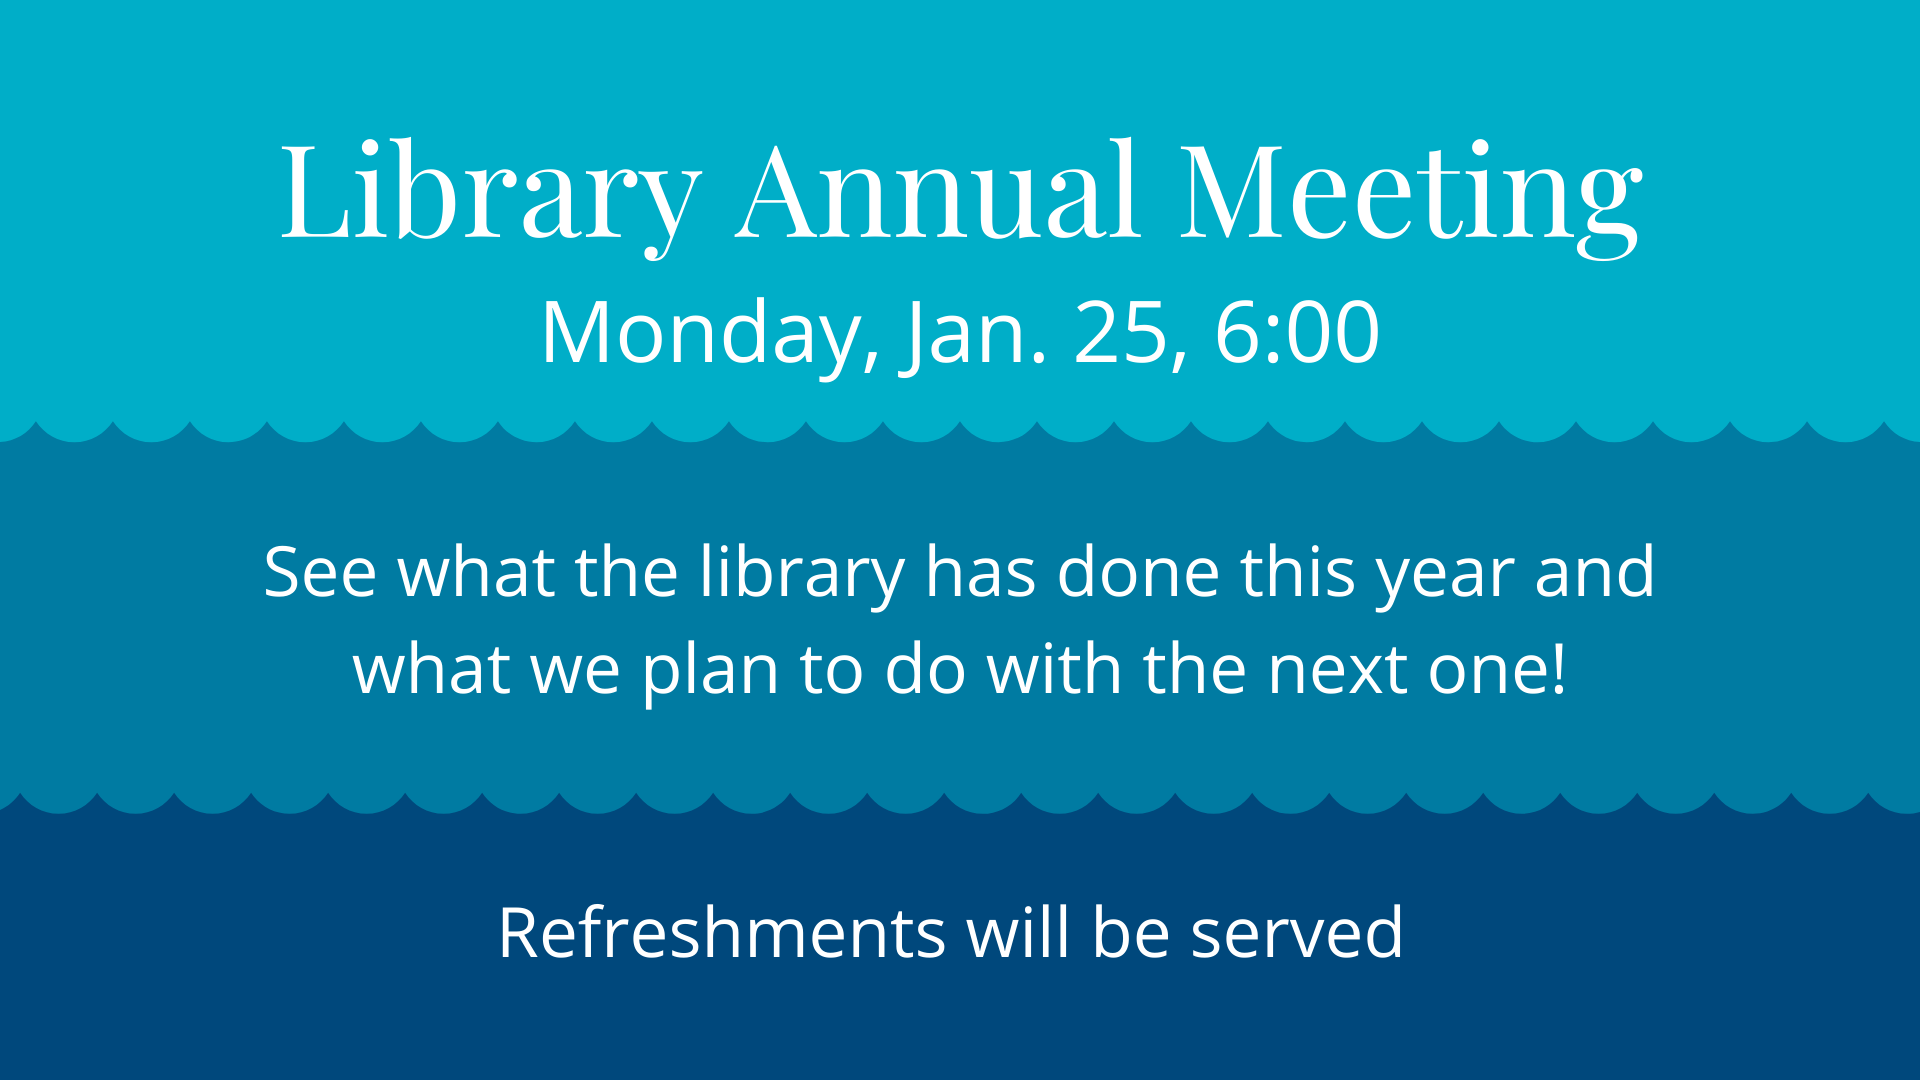 Library Annual Meeting